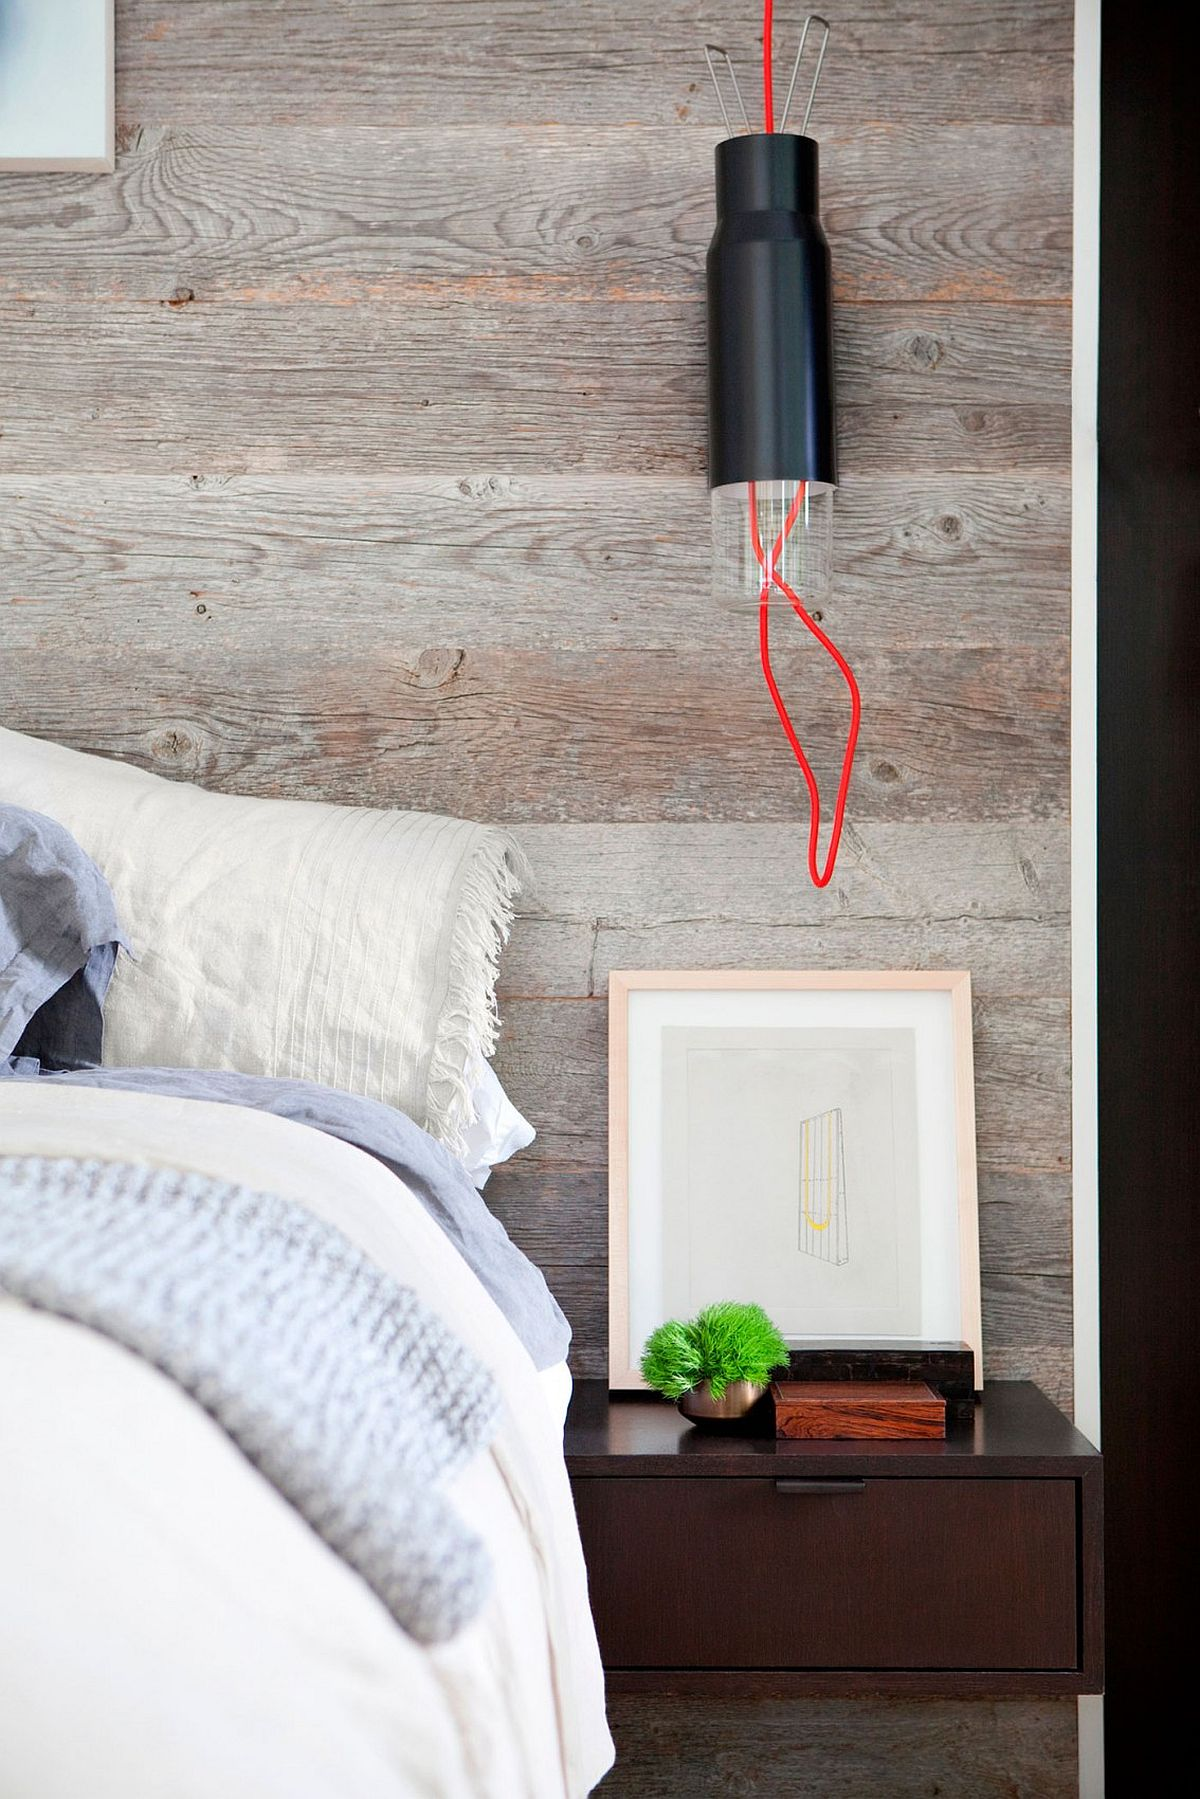 Bedside lighting idea that is simple and minimal